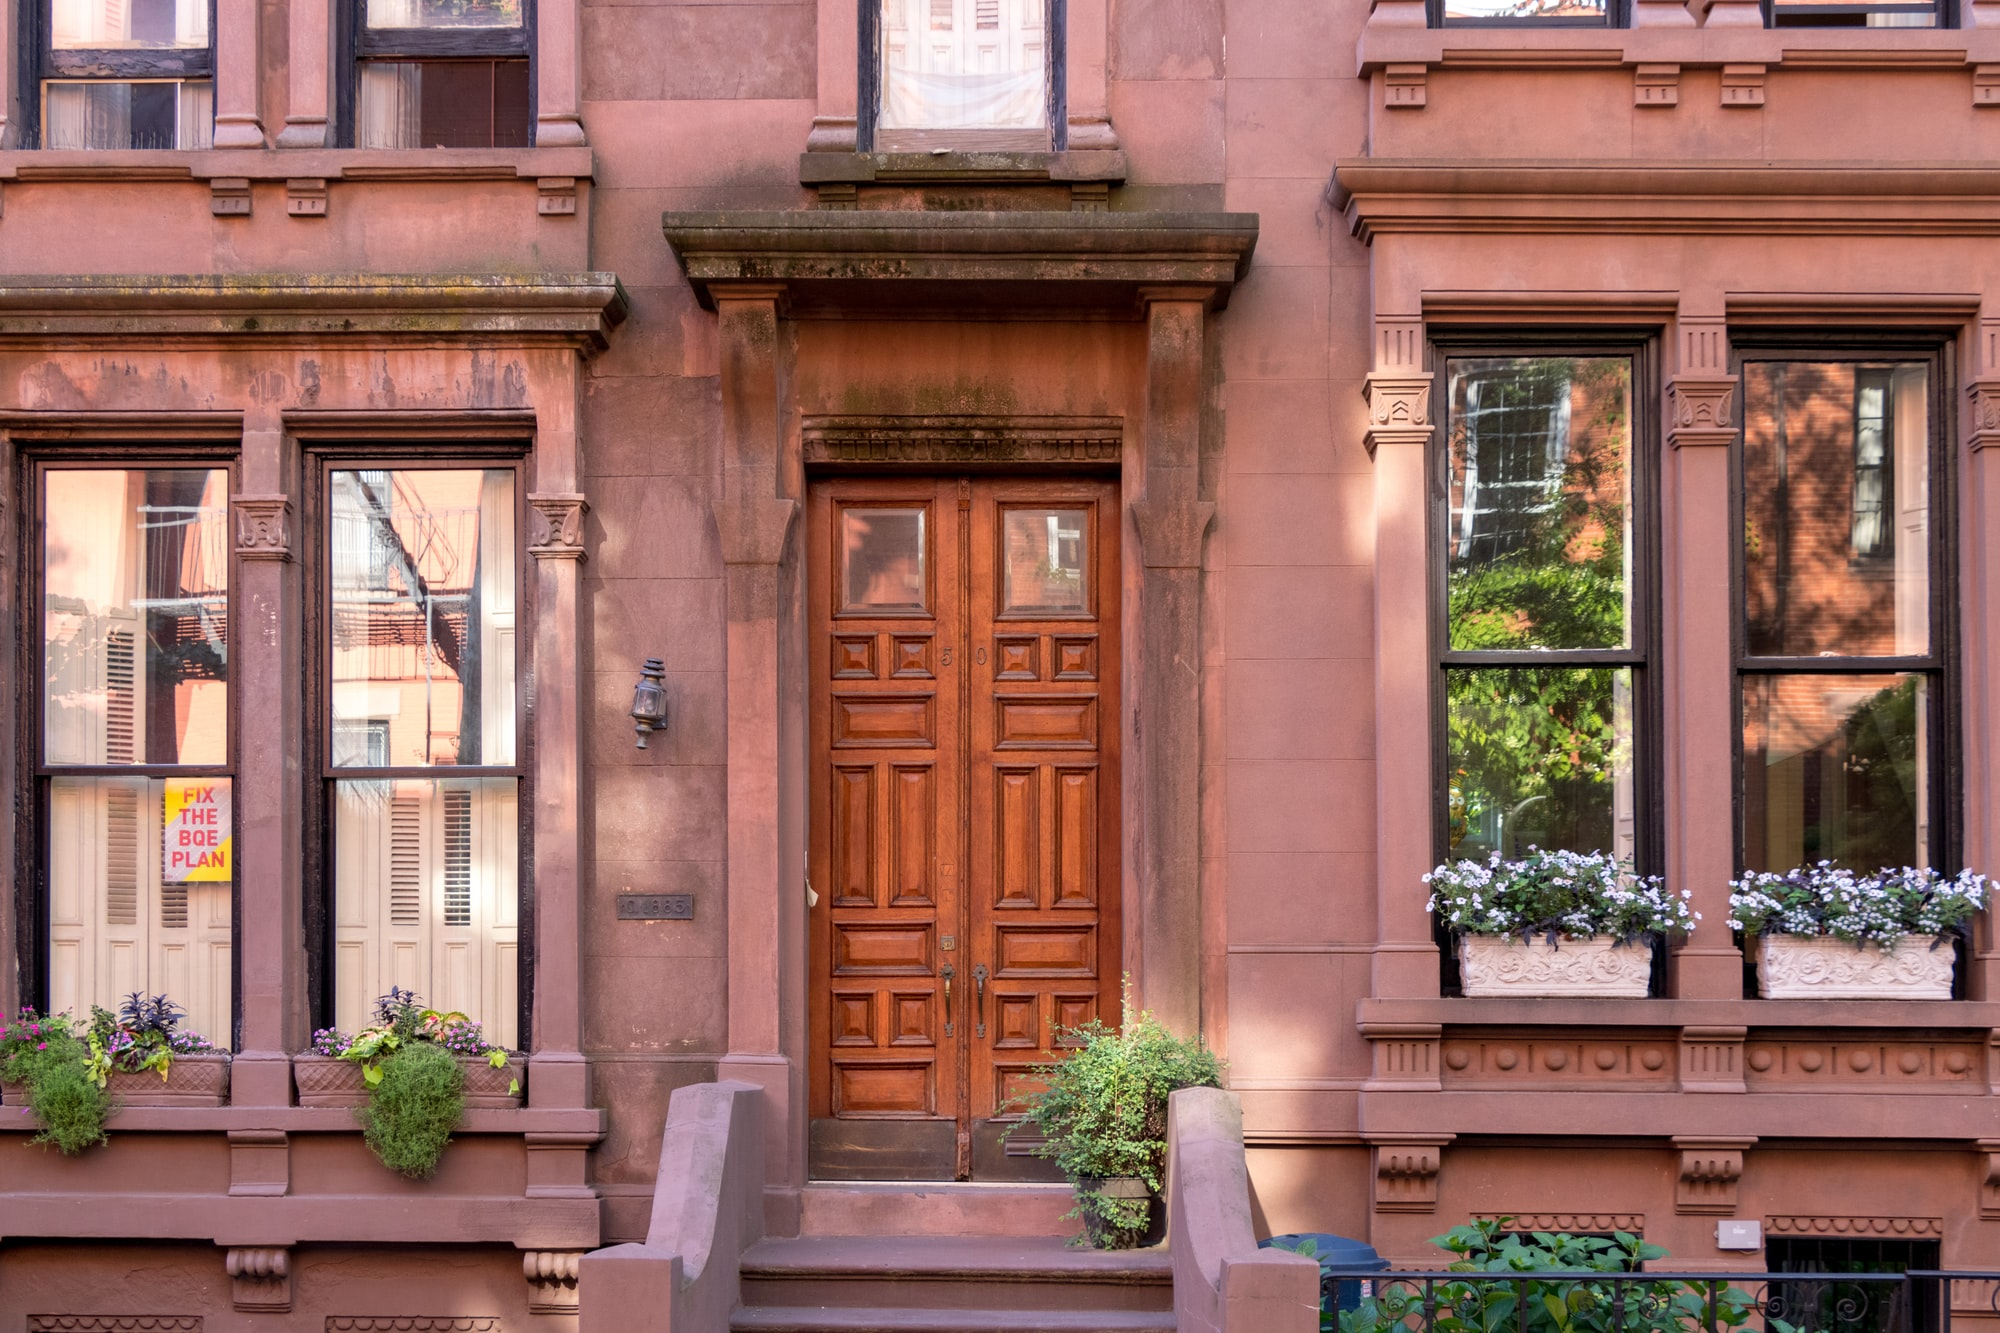 A Brownstone in the City